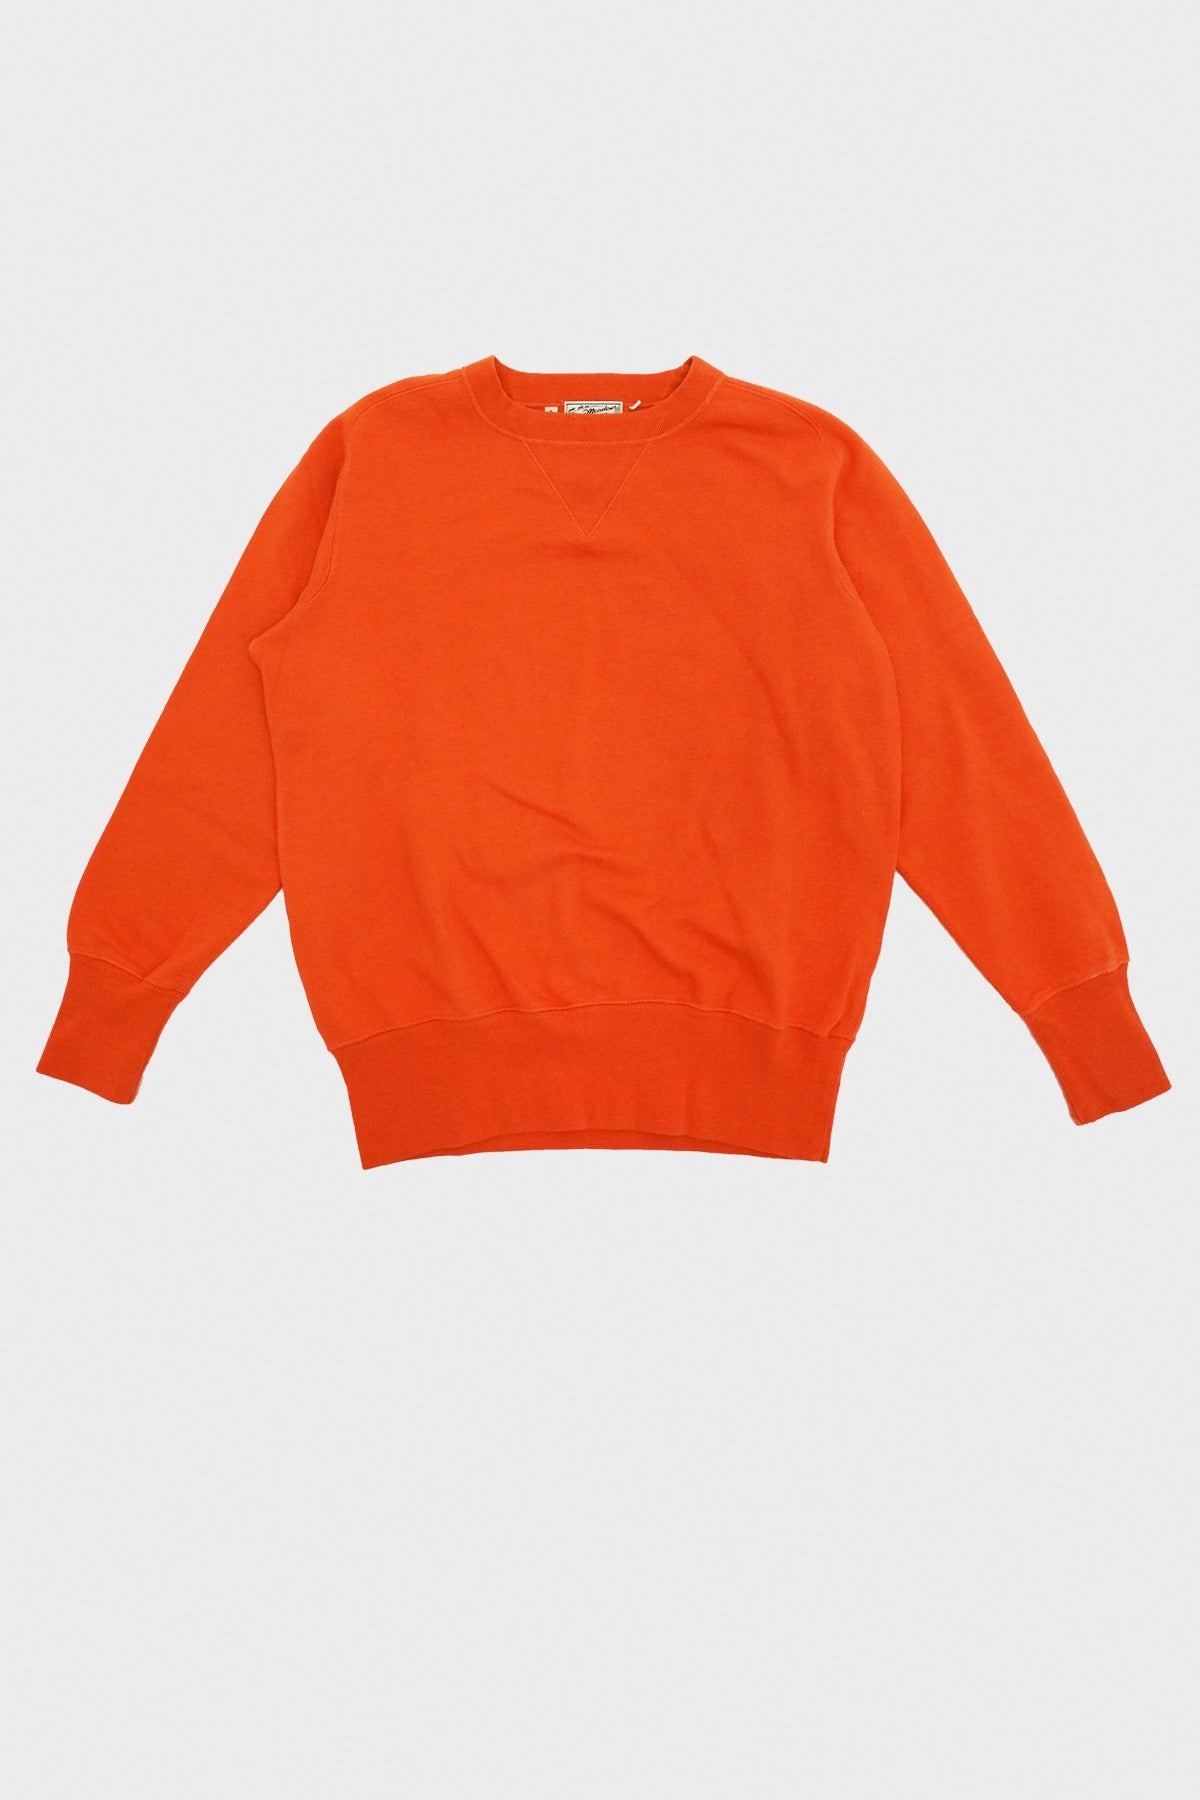 Levi's Vintage Clothing - Bay Meadows Sweatshirt - Russet Orange - Canoe Club